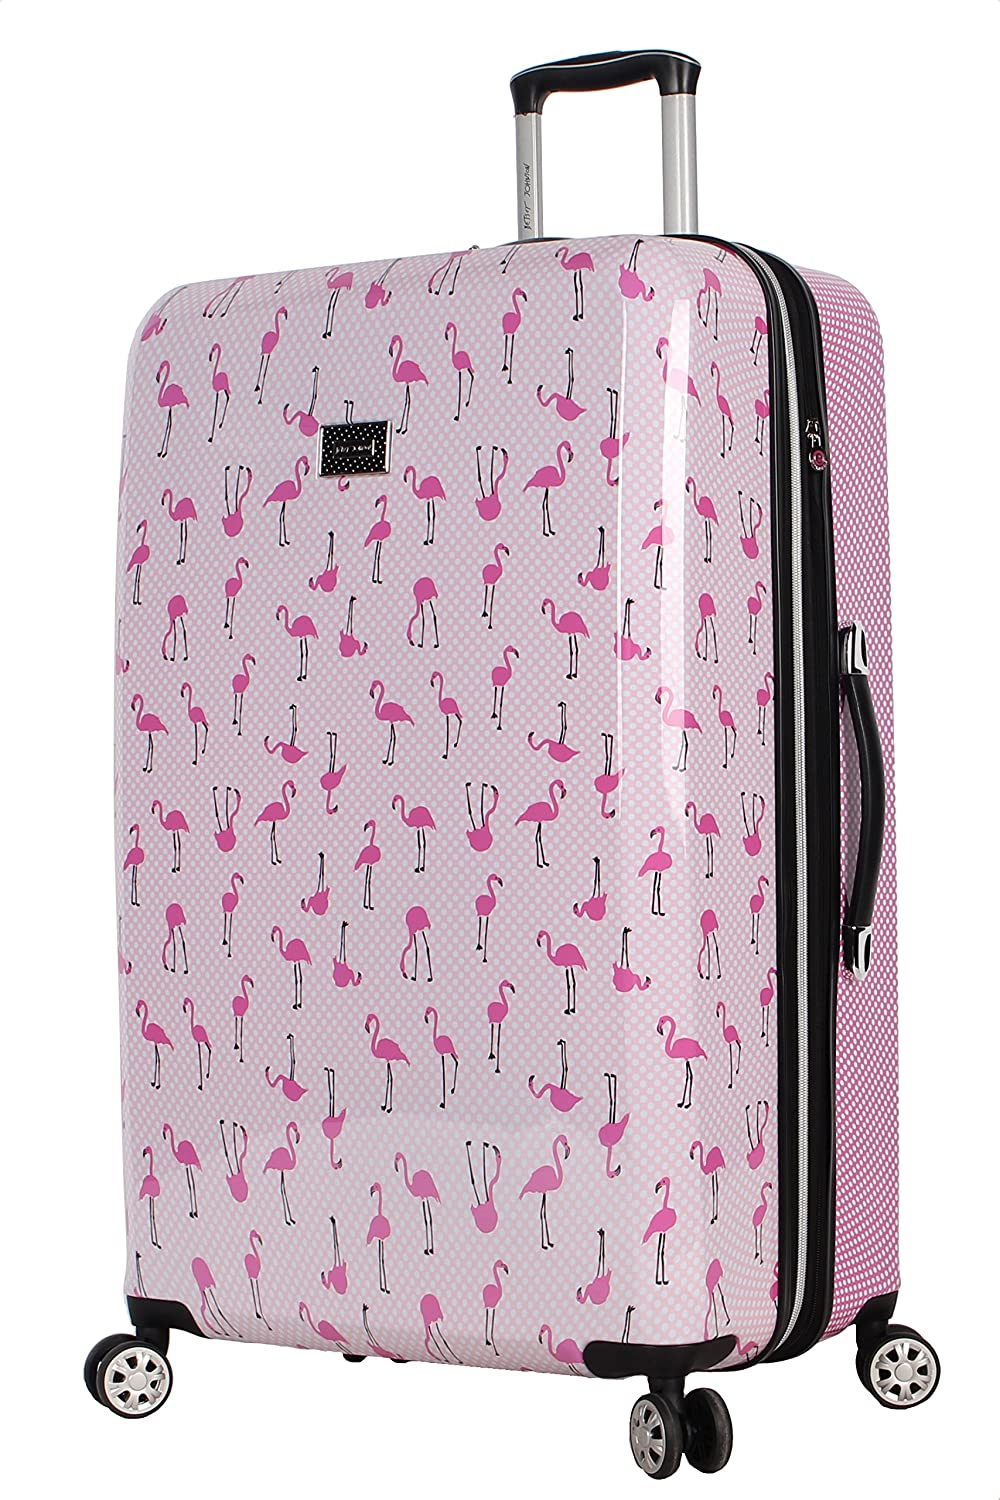 ABS + PC Chevron Hearts Designer Lightweight Bag with 8-Rolling Spinner Wheels Expandable Scratch Resistant Betsey Johnson 30 Inch Checked Luggage Collection Hardside Suitcase